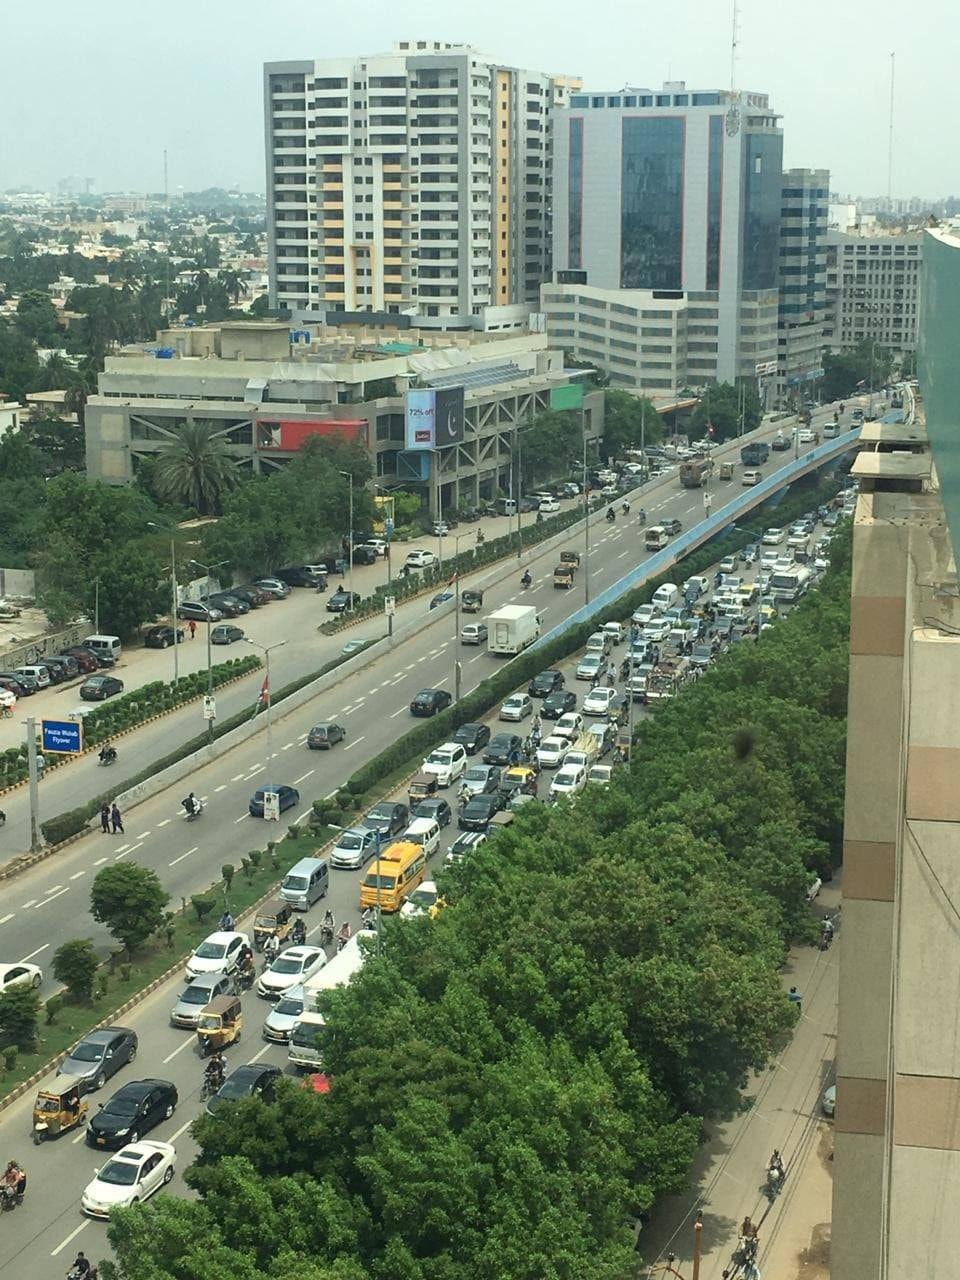 Shahrae Faisal in Karachi during Kashmir Hour. ─ Photo courtesy Rabya Hasan